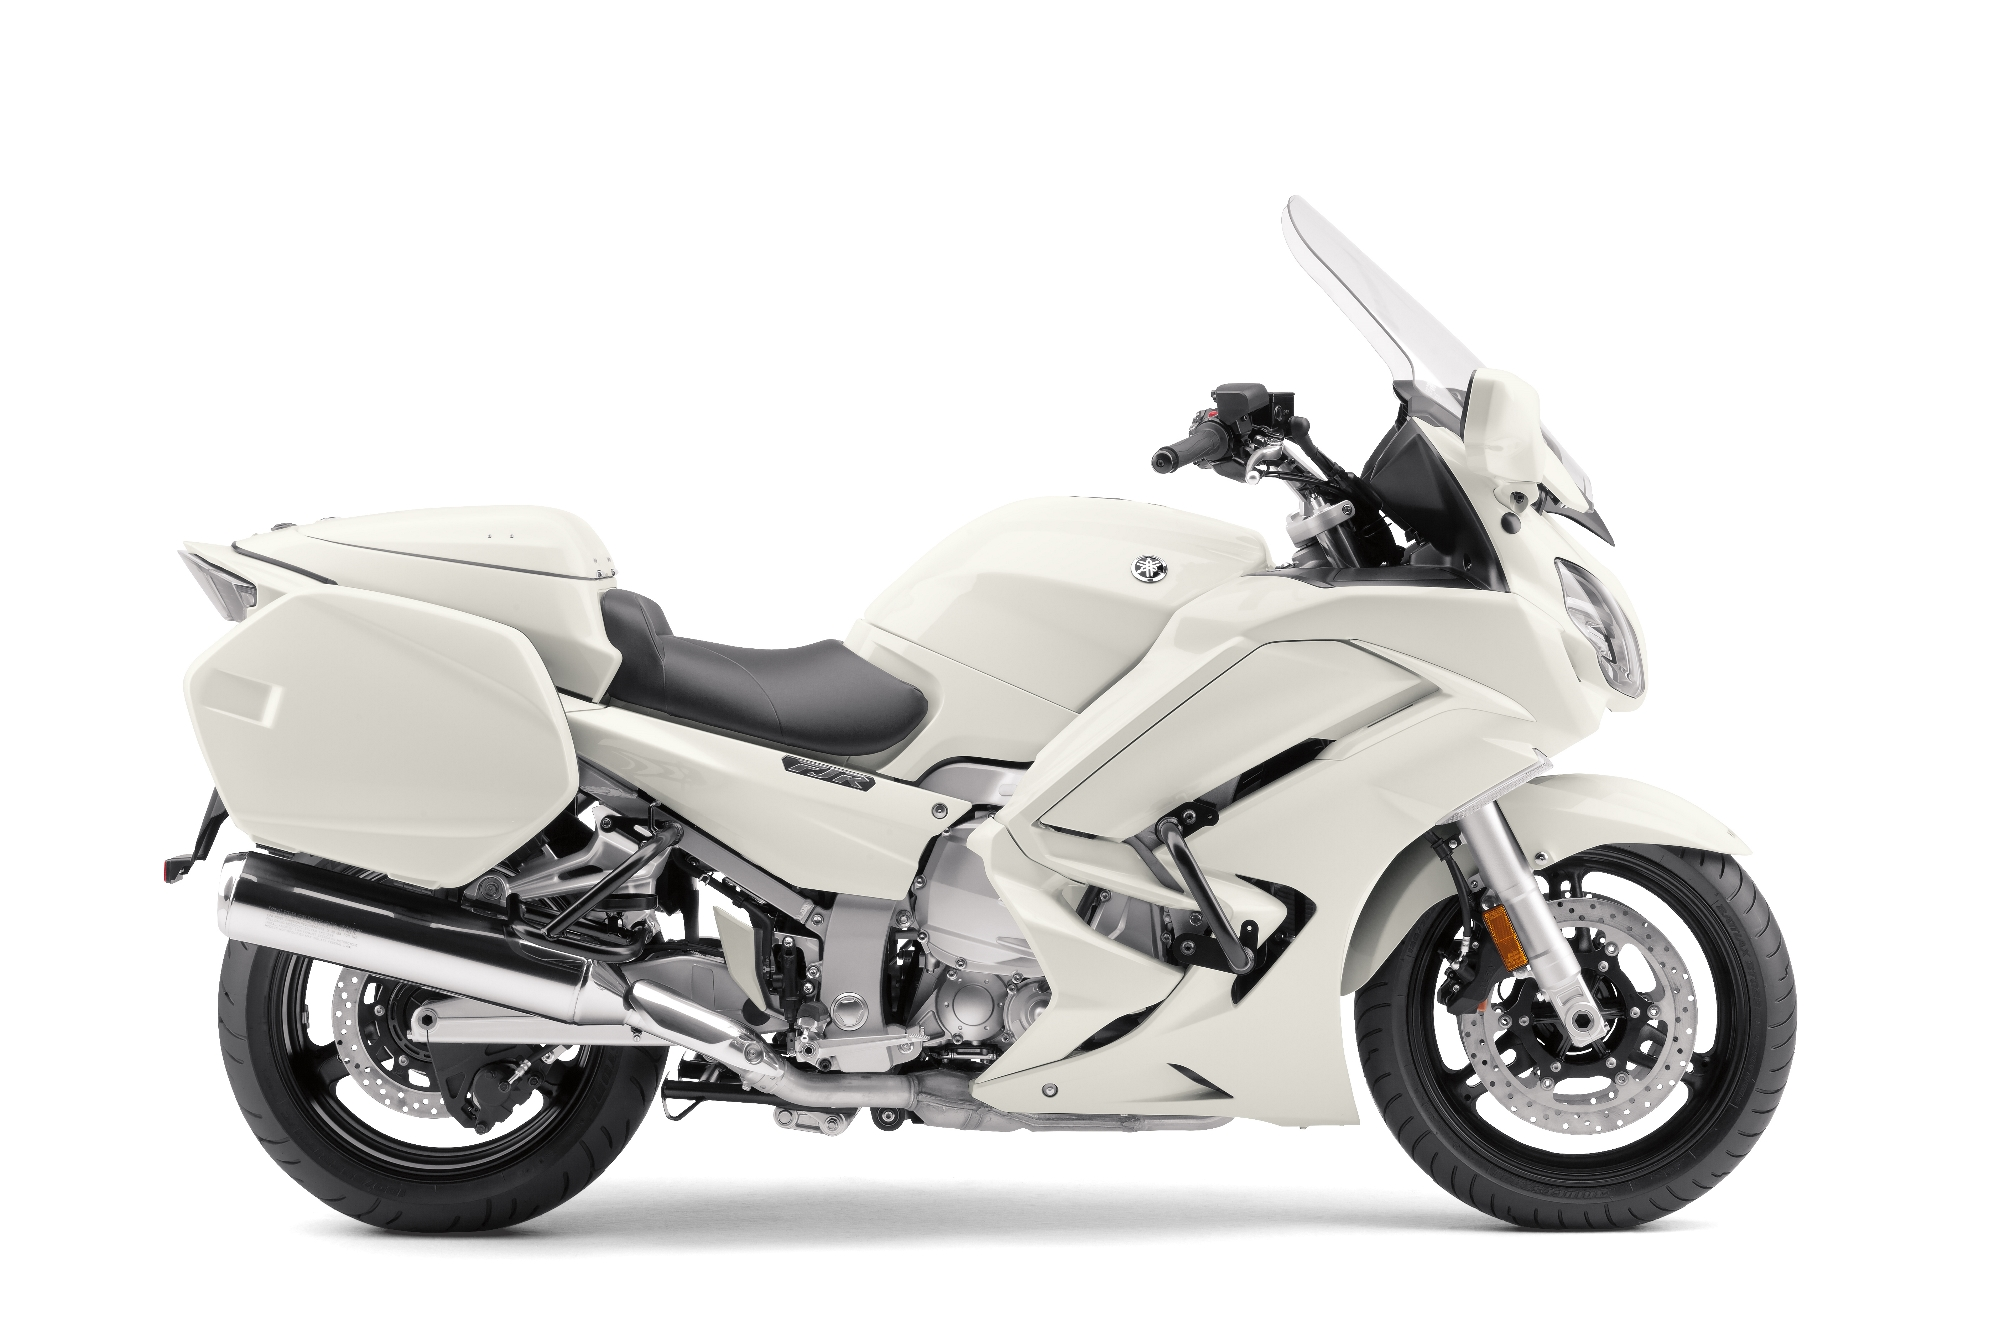 Yamaha Is Bringing The Fjr1300p Police Motorcycle To The U S The